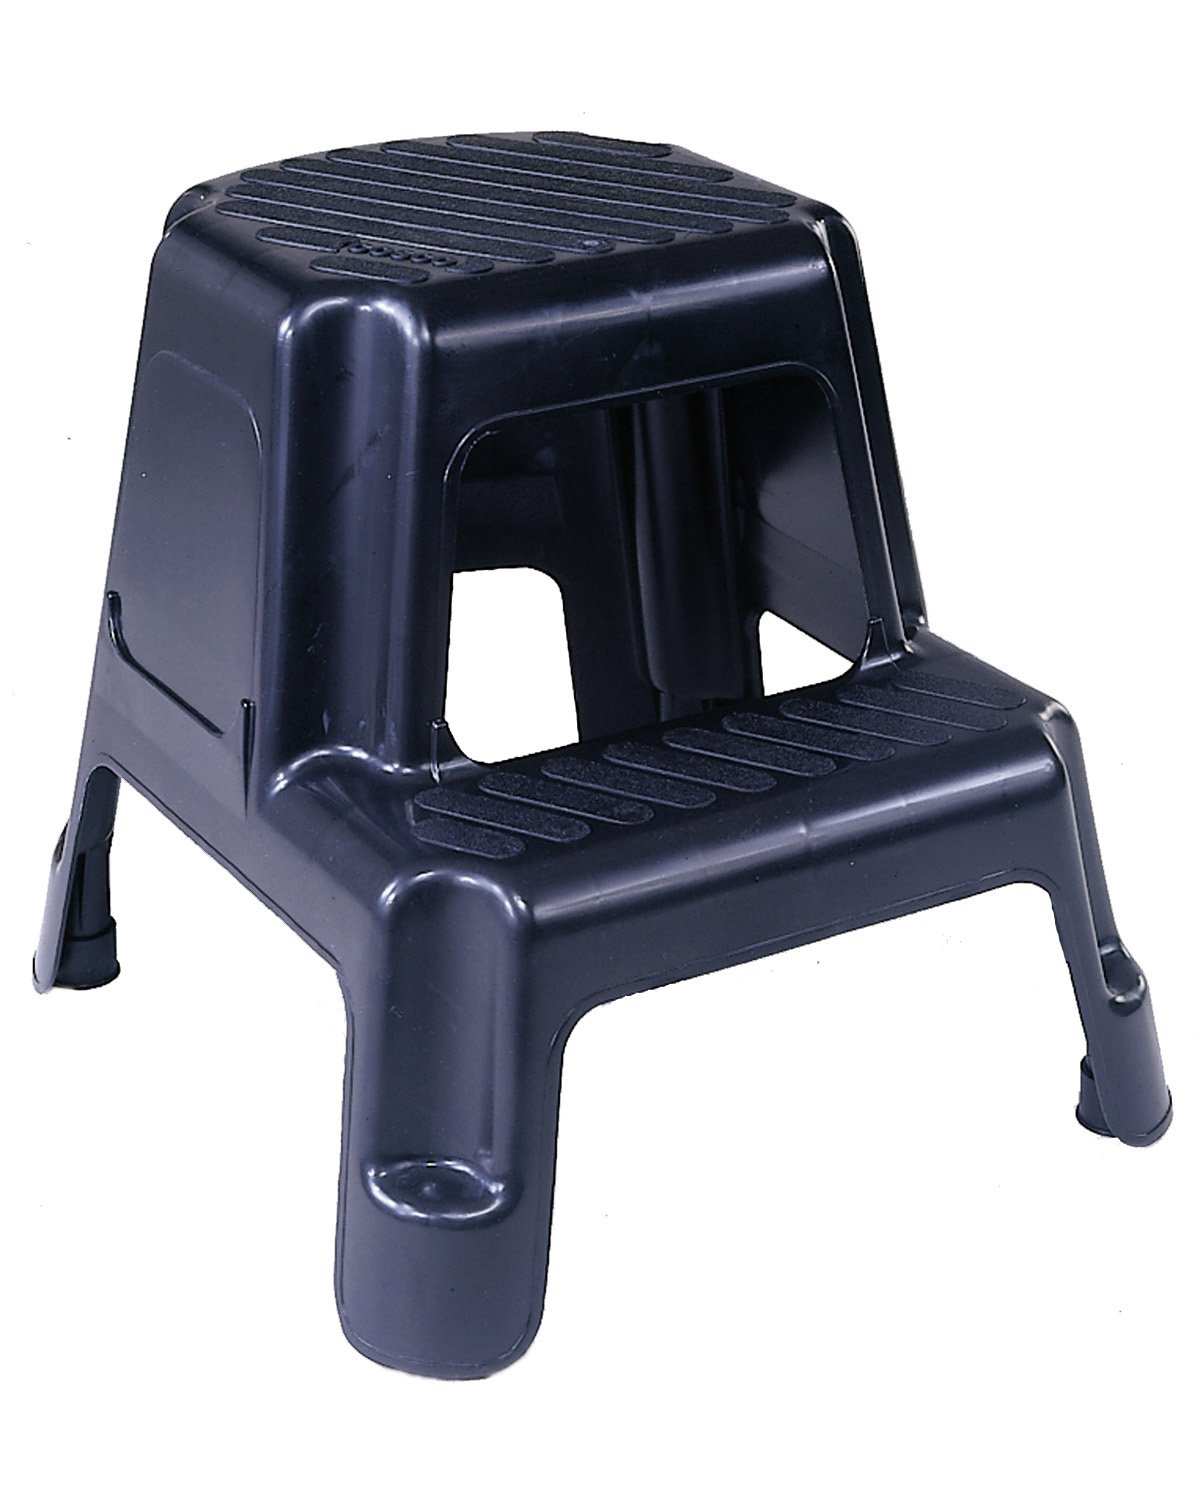 rma project step of p aluminum lightweight stool top s with picture rubbermaid